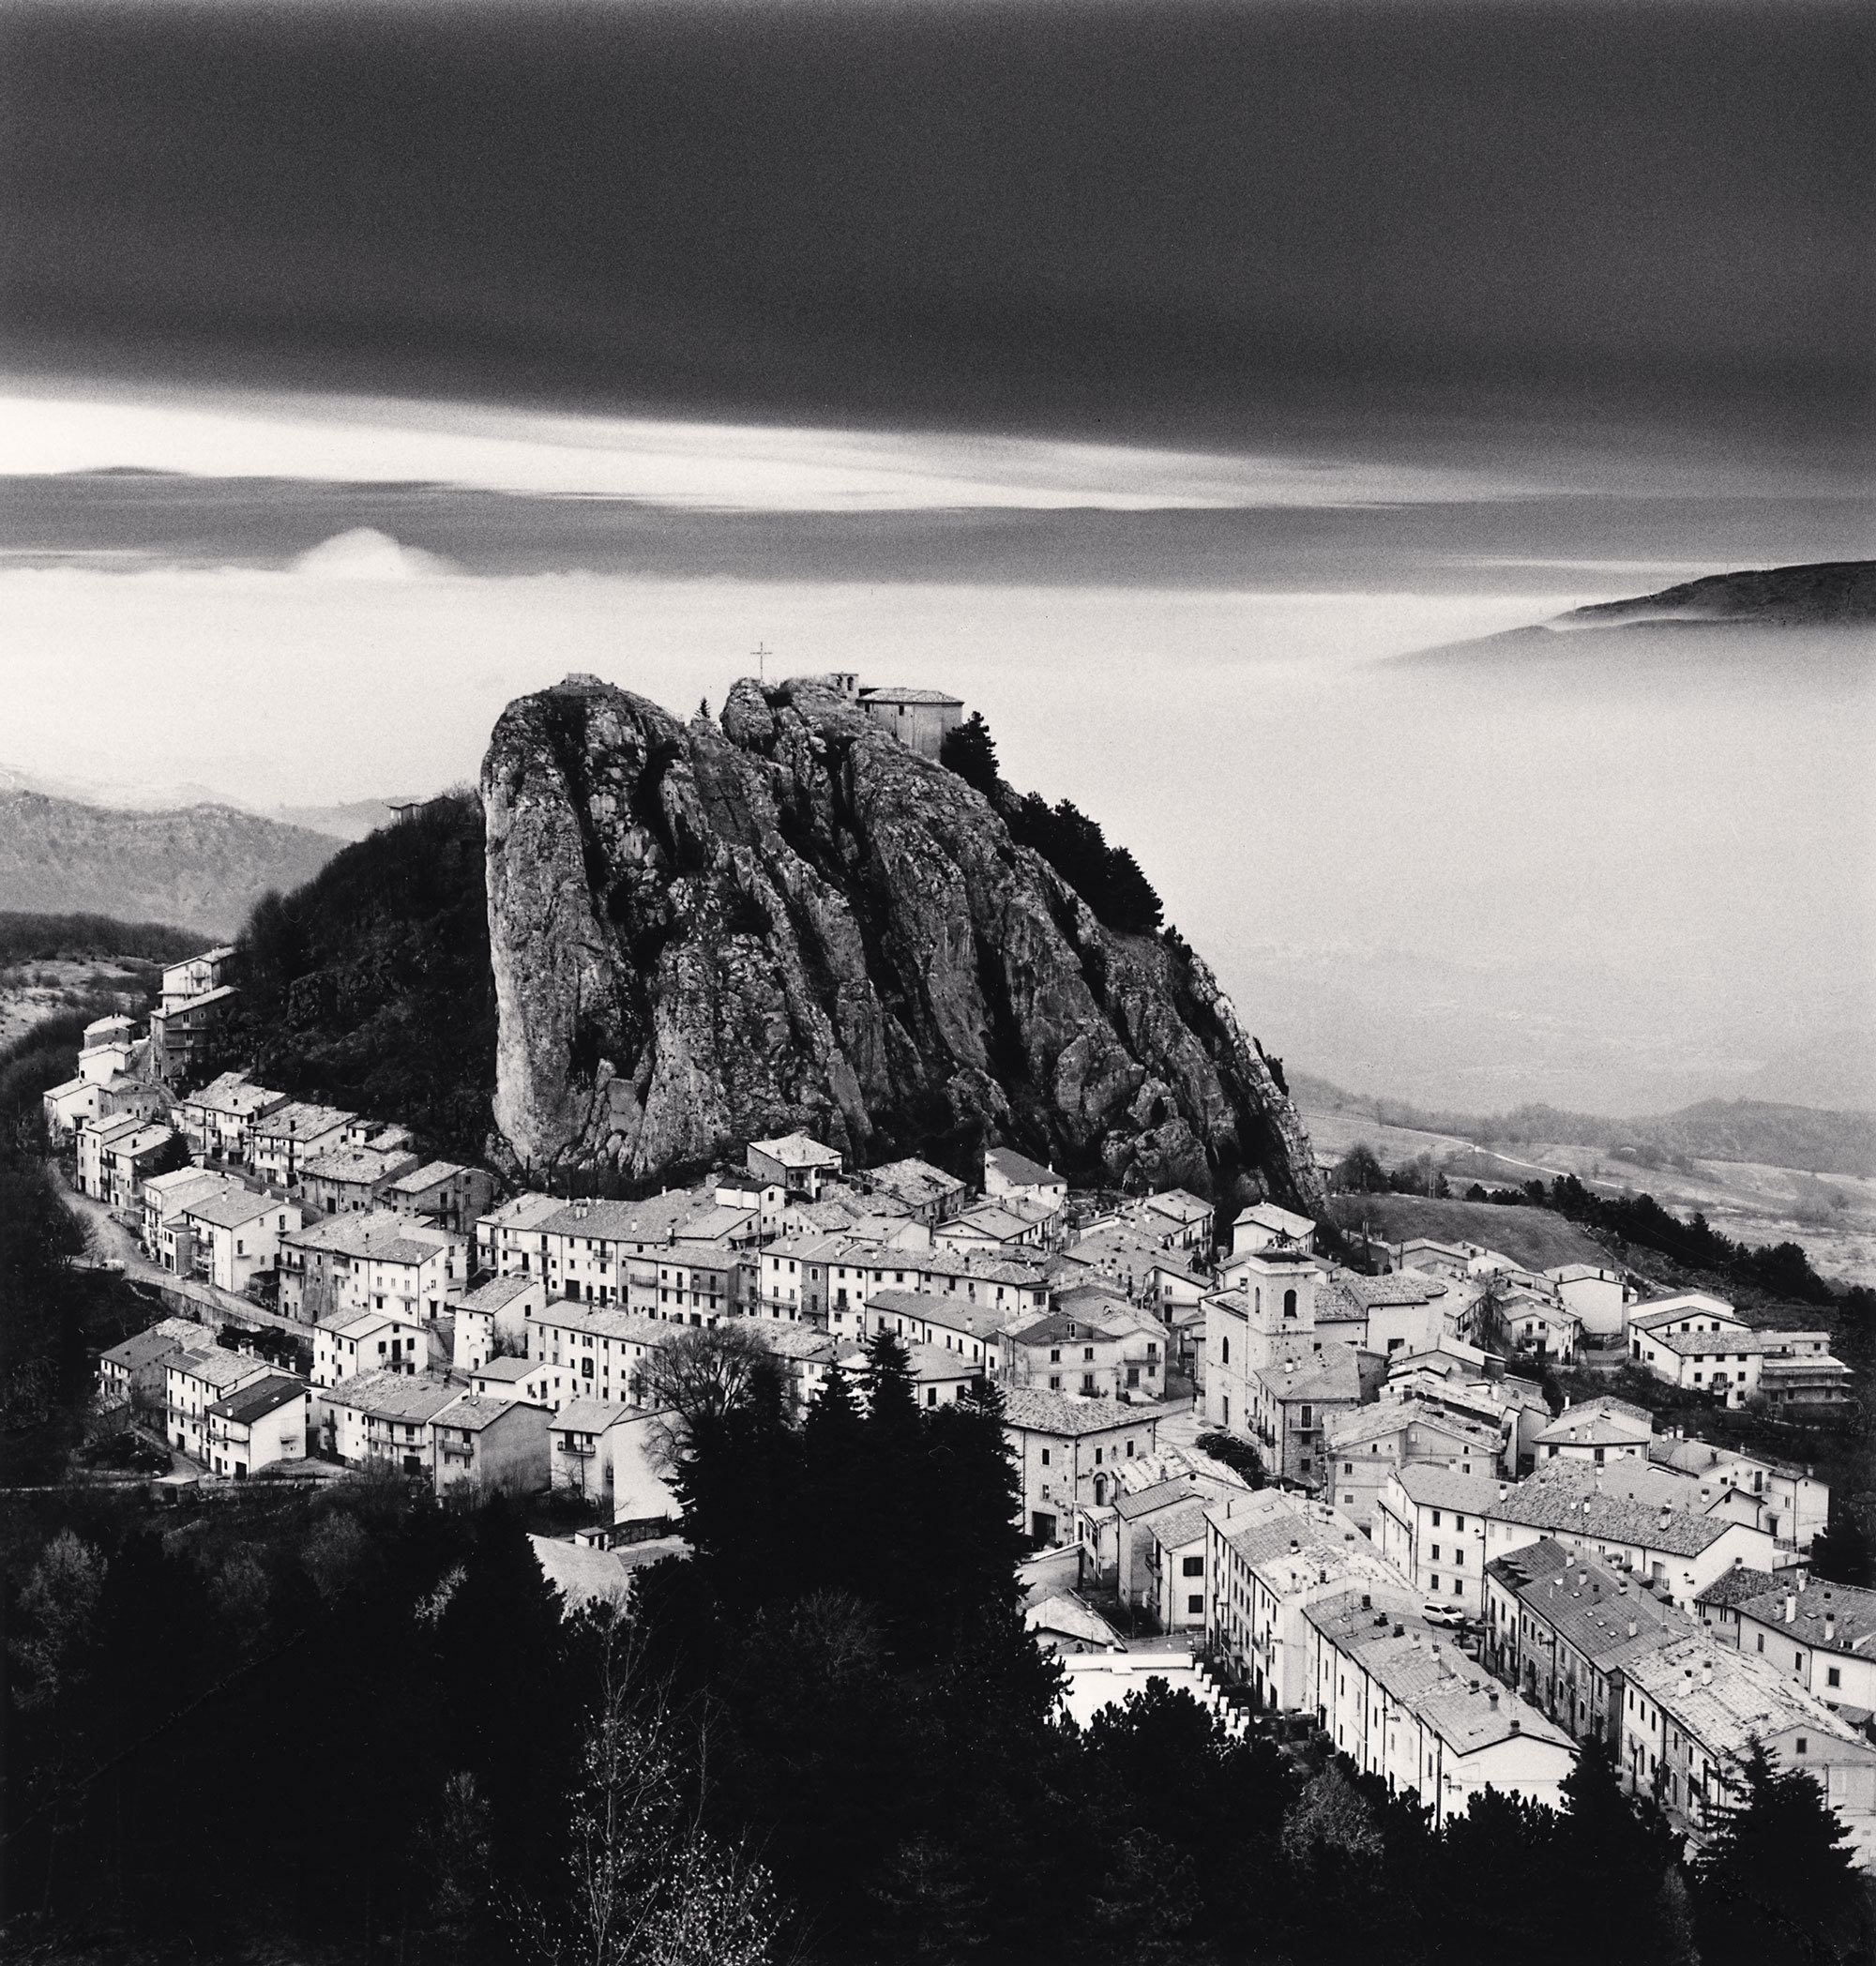 Approaching clouds, Pizzoferrato (Chieti), Abruzzo, 2016. - (Michael Kenna)